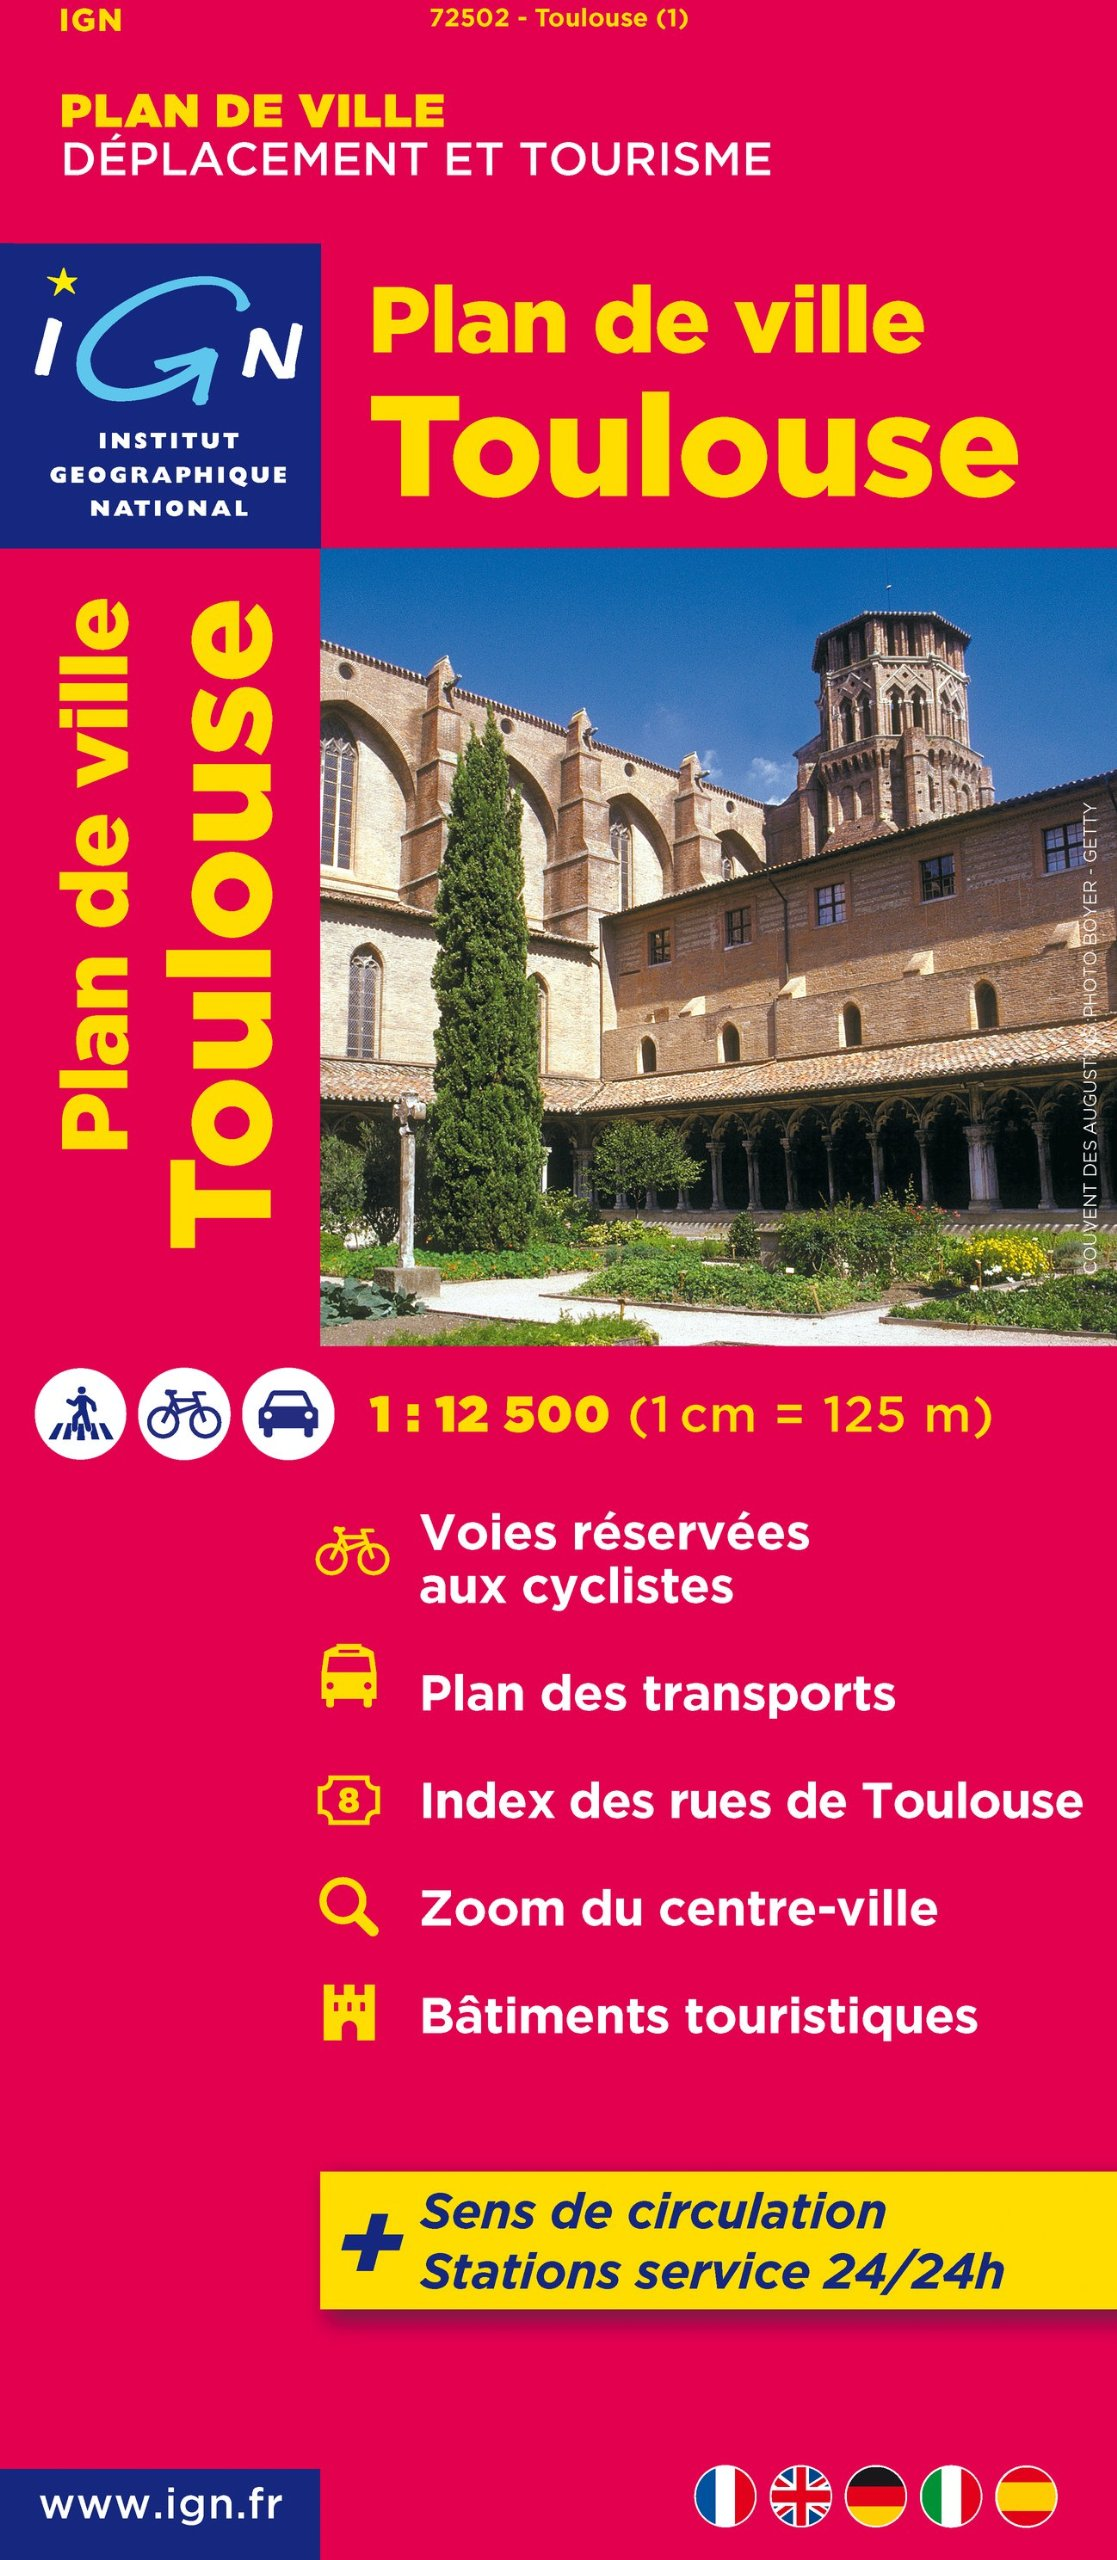 Toulouse: IGN72502 (Ign Map)